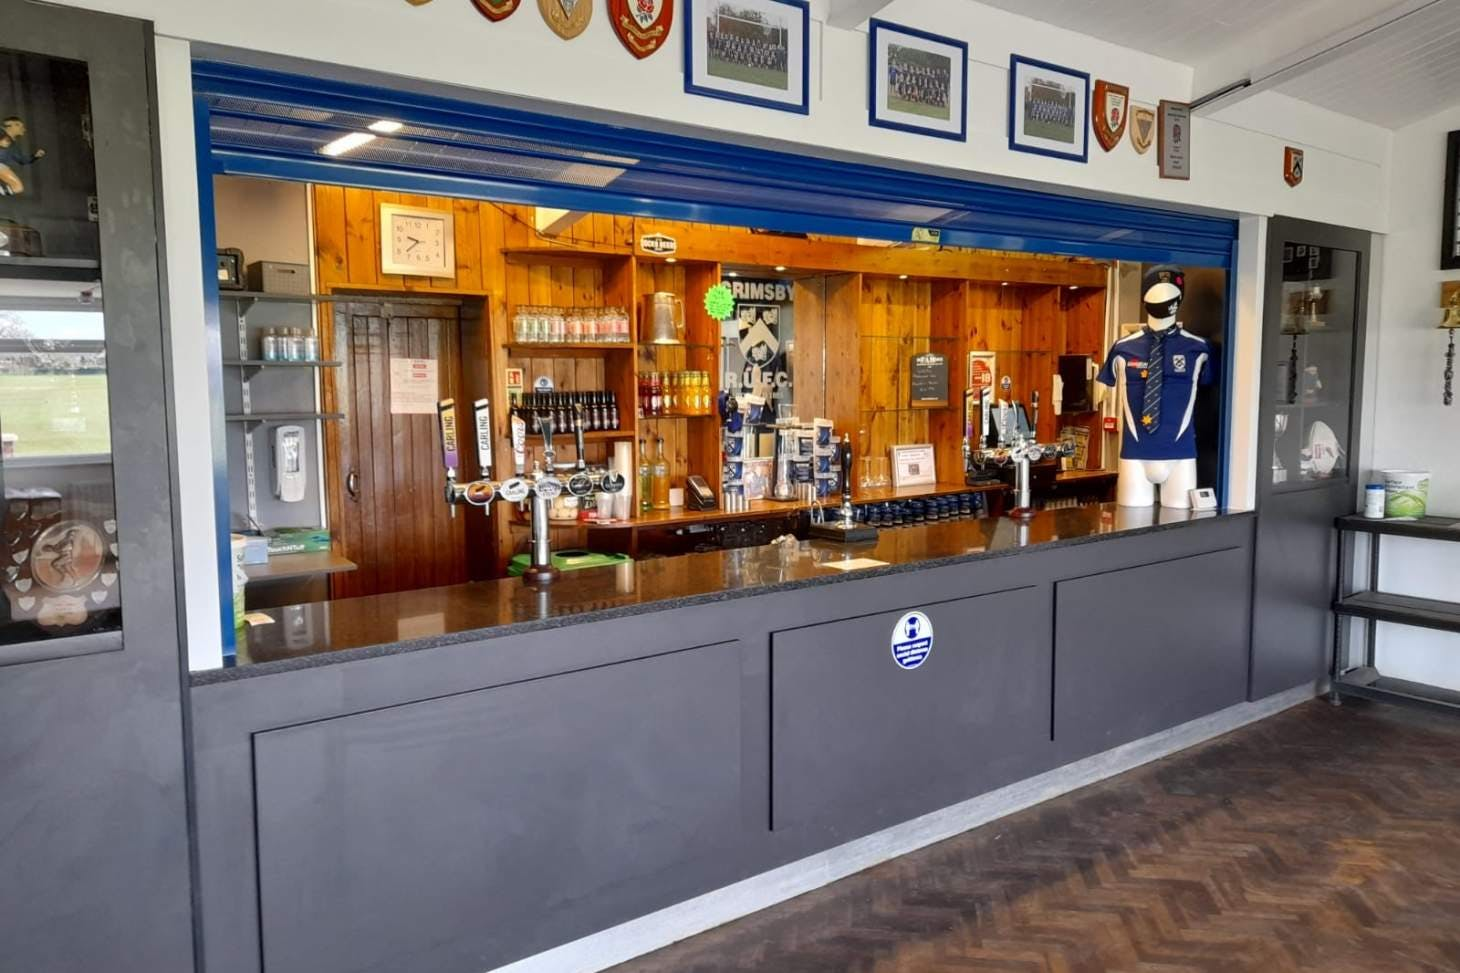 Grimsby Rugby Union Football Club Function room space hire